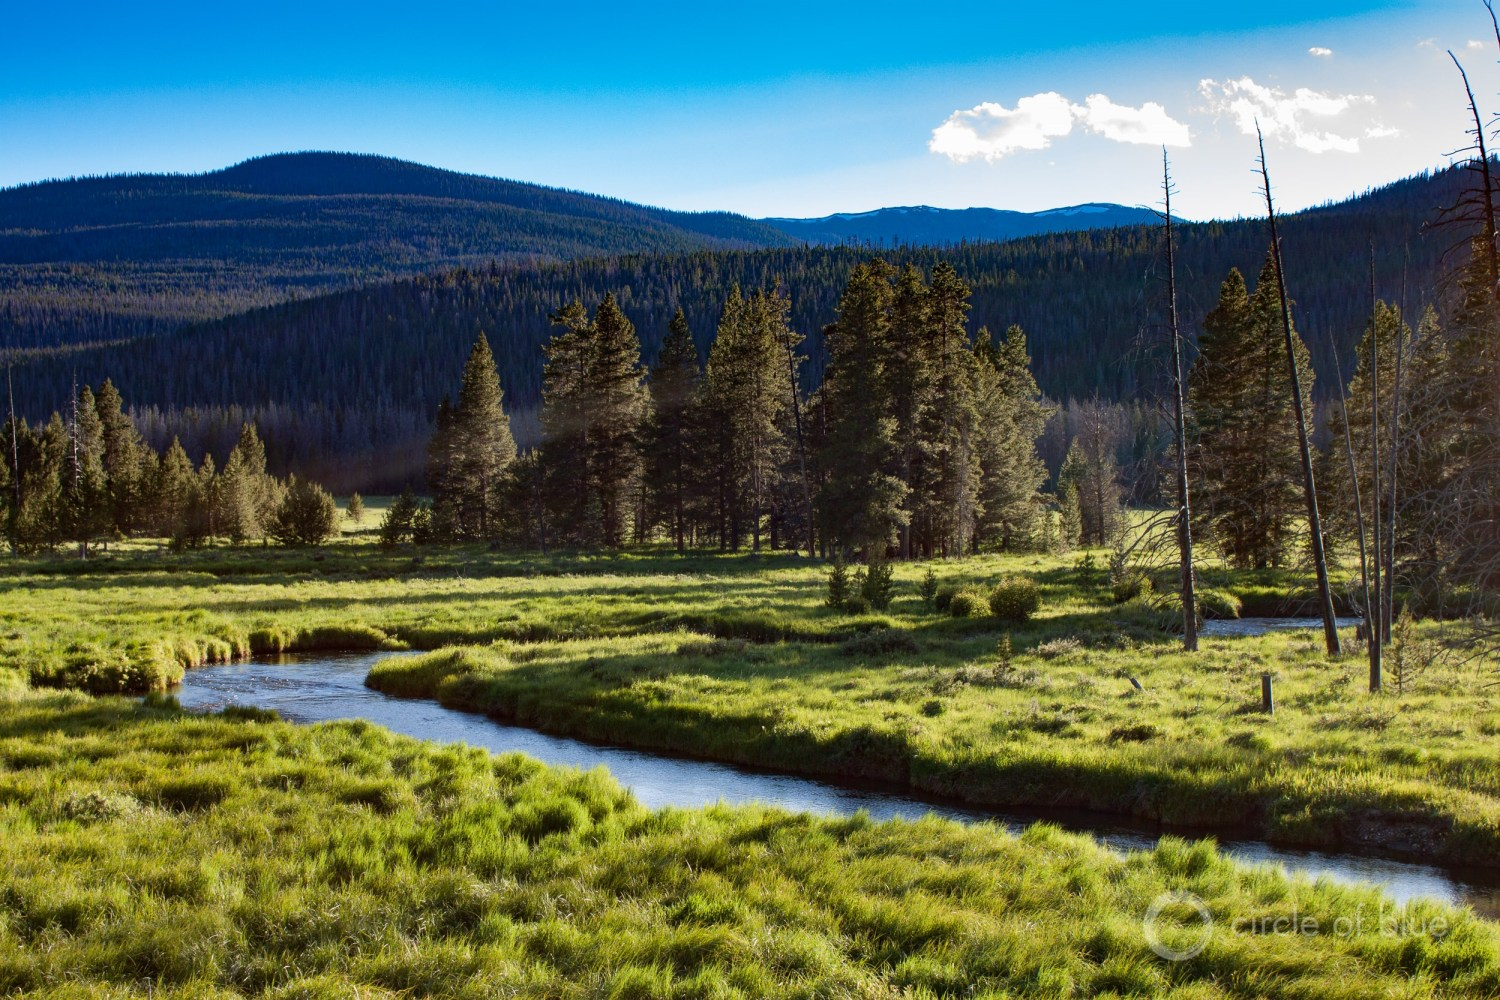 The Colorado River headwaters in Rocky Mountain National Park. Photo © Brett Walton / Circle of Blue